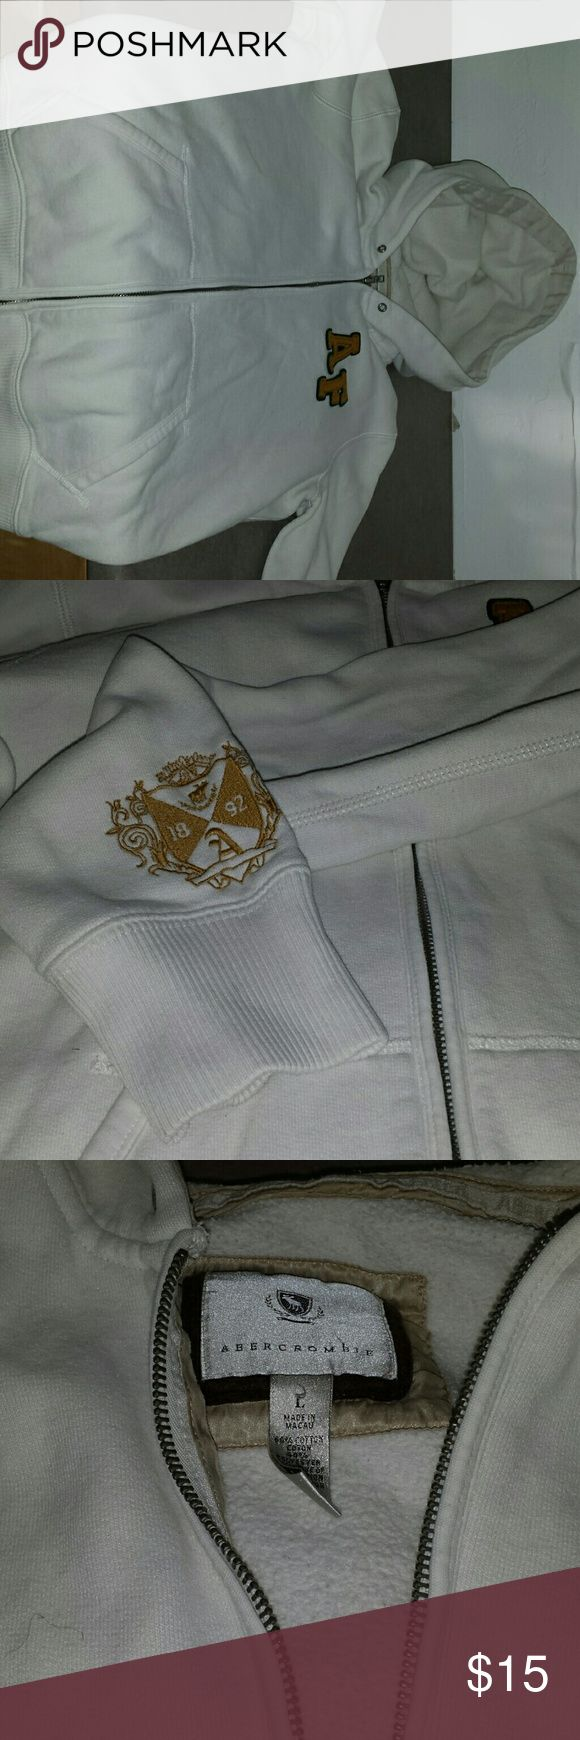 A&F white zip up hoodie. A&F unisex large white zip up hoodie. Has emblem on left cuff as seen in pic. Has a dble zipper. No tears or holes. Abercrombie & Fitch Sweaters